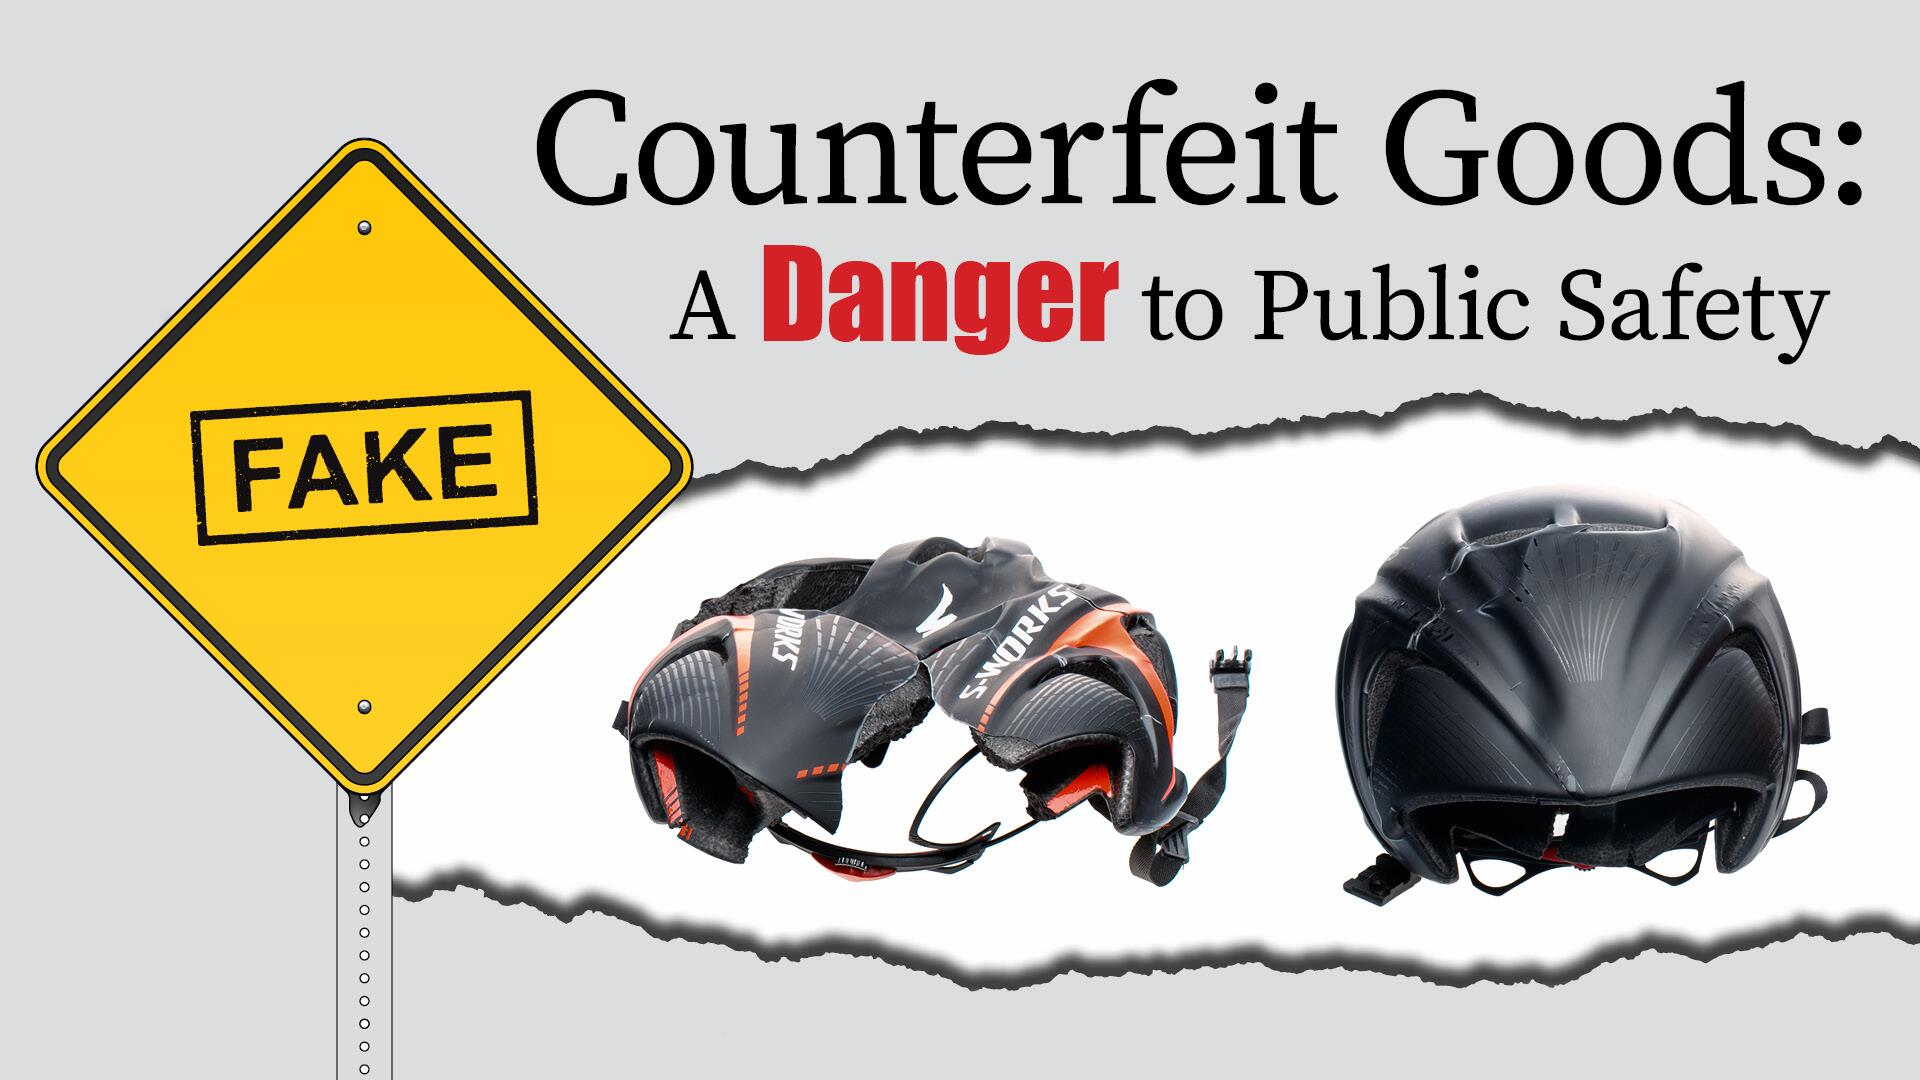 Counterfeit Goods: A Danger to Public Safety